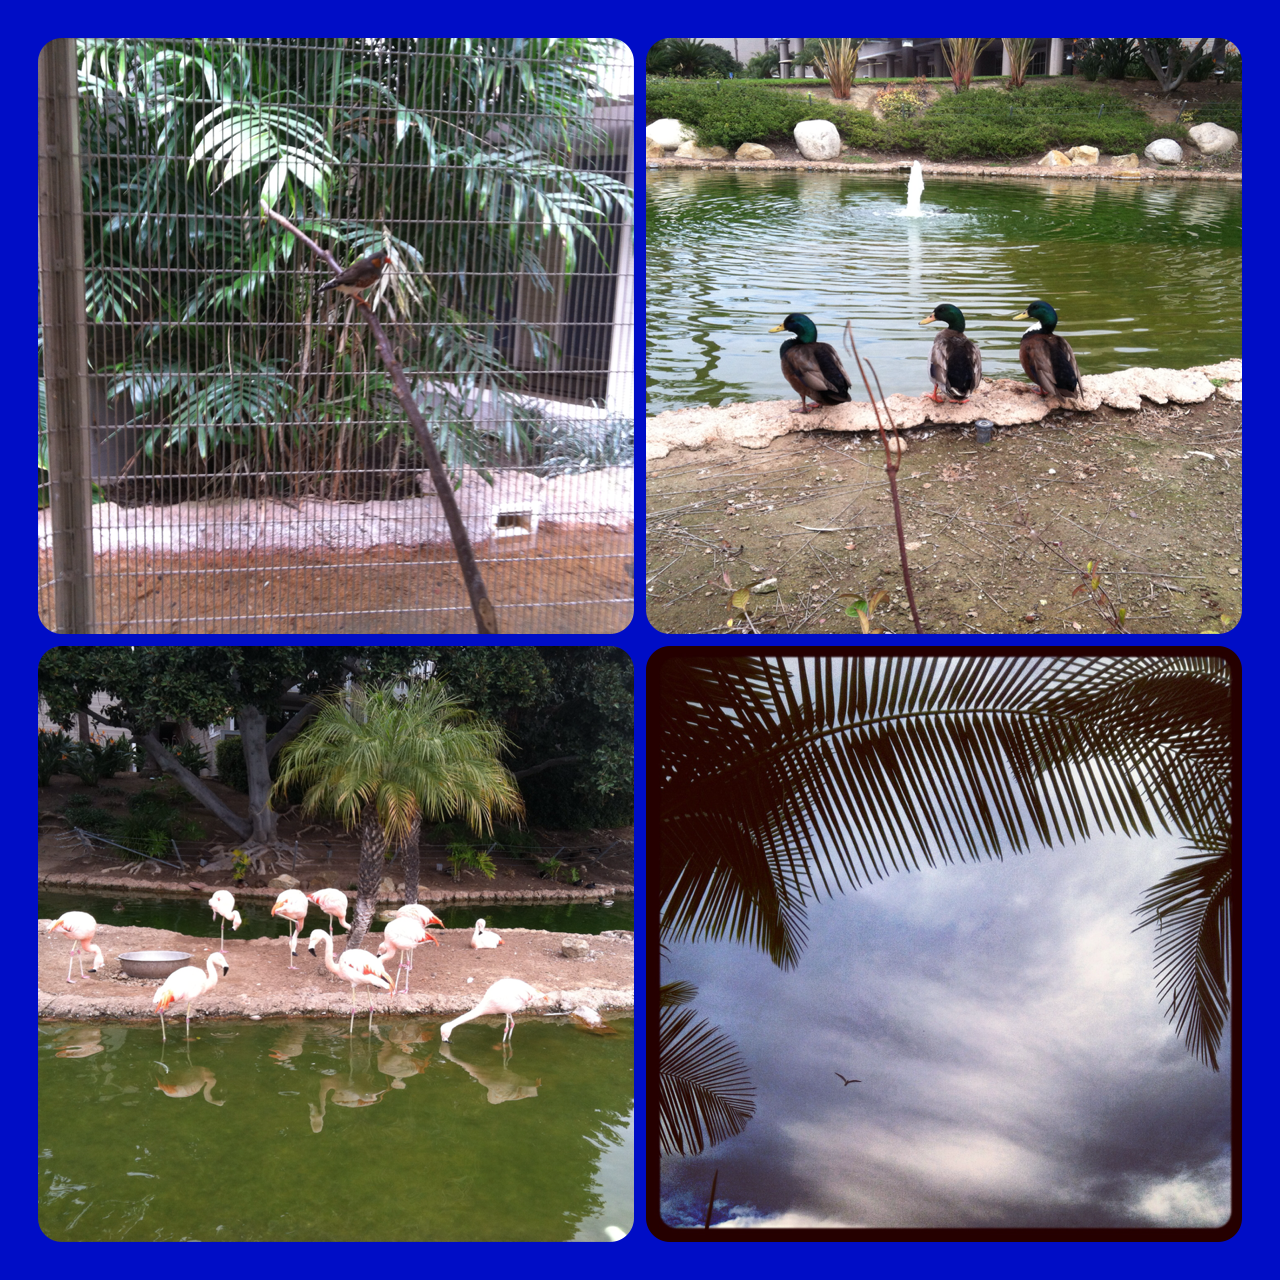 Flamingos, finches and ducks - oh my! - at the Coronado Island Marriott